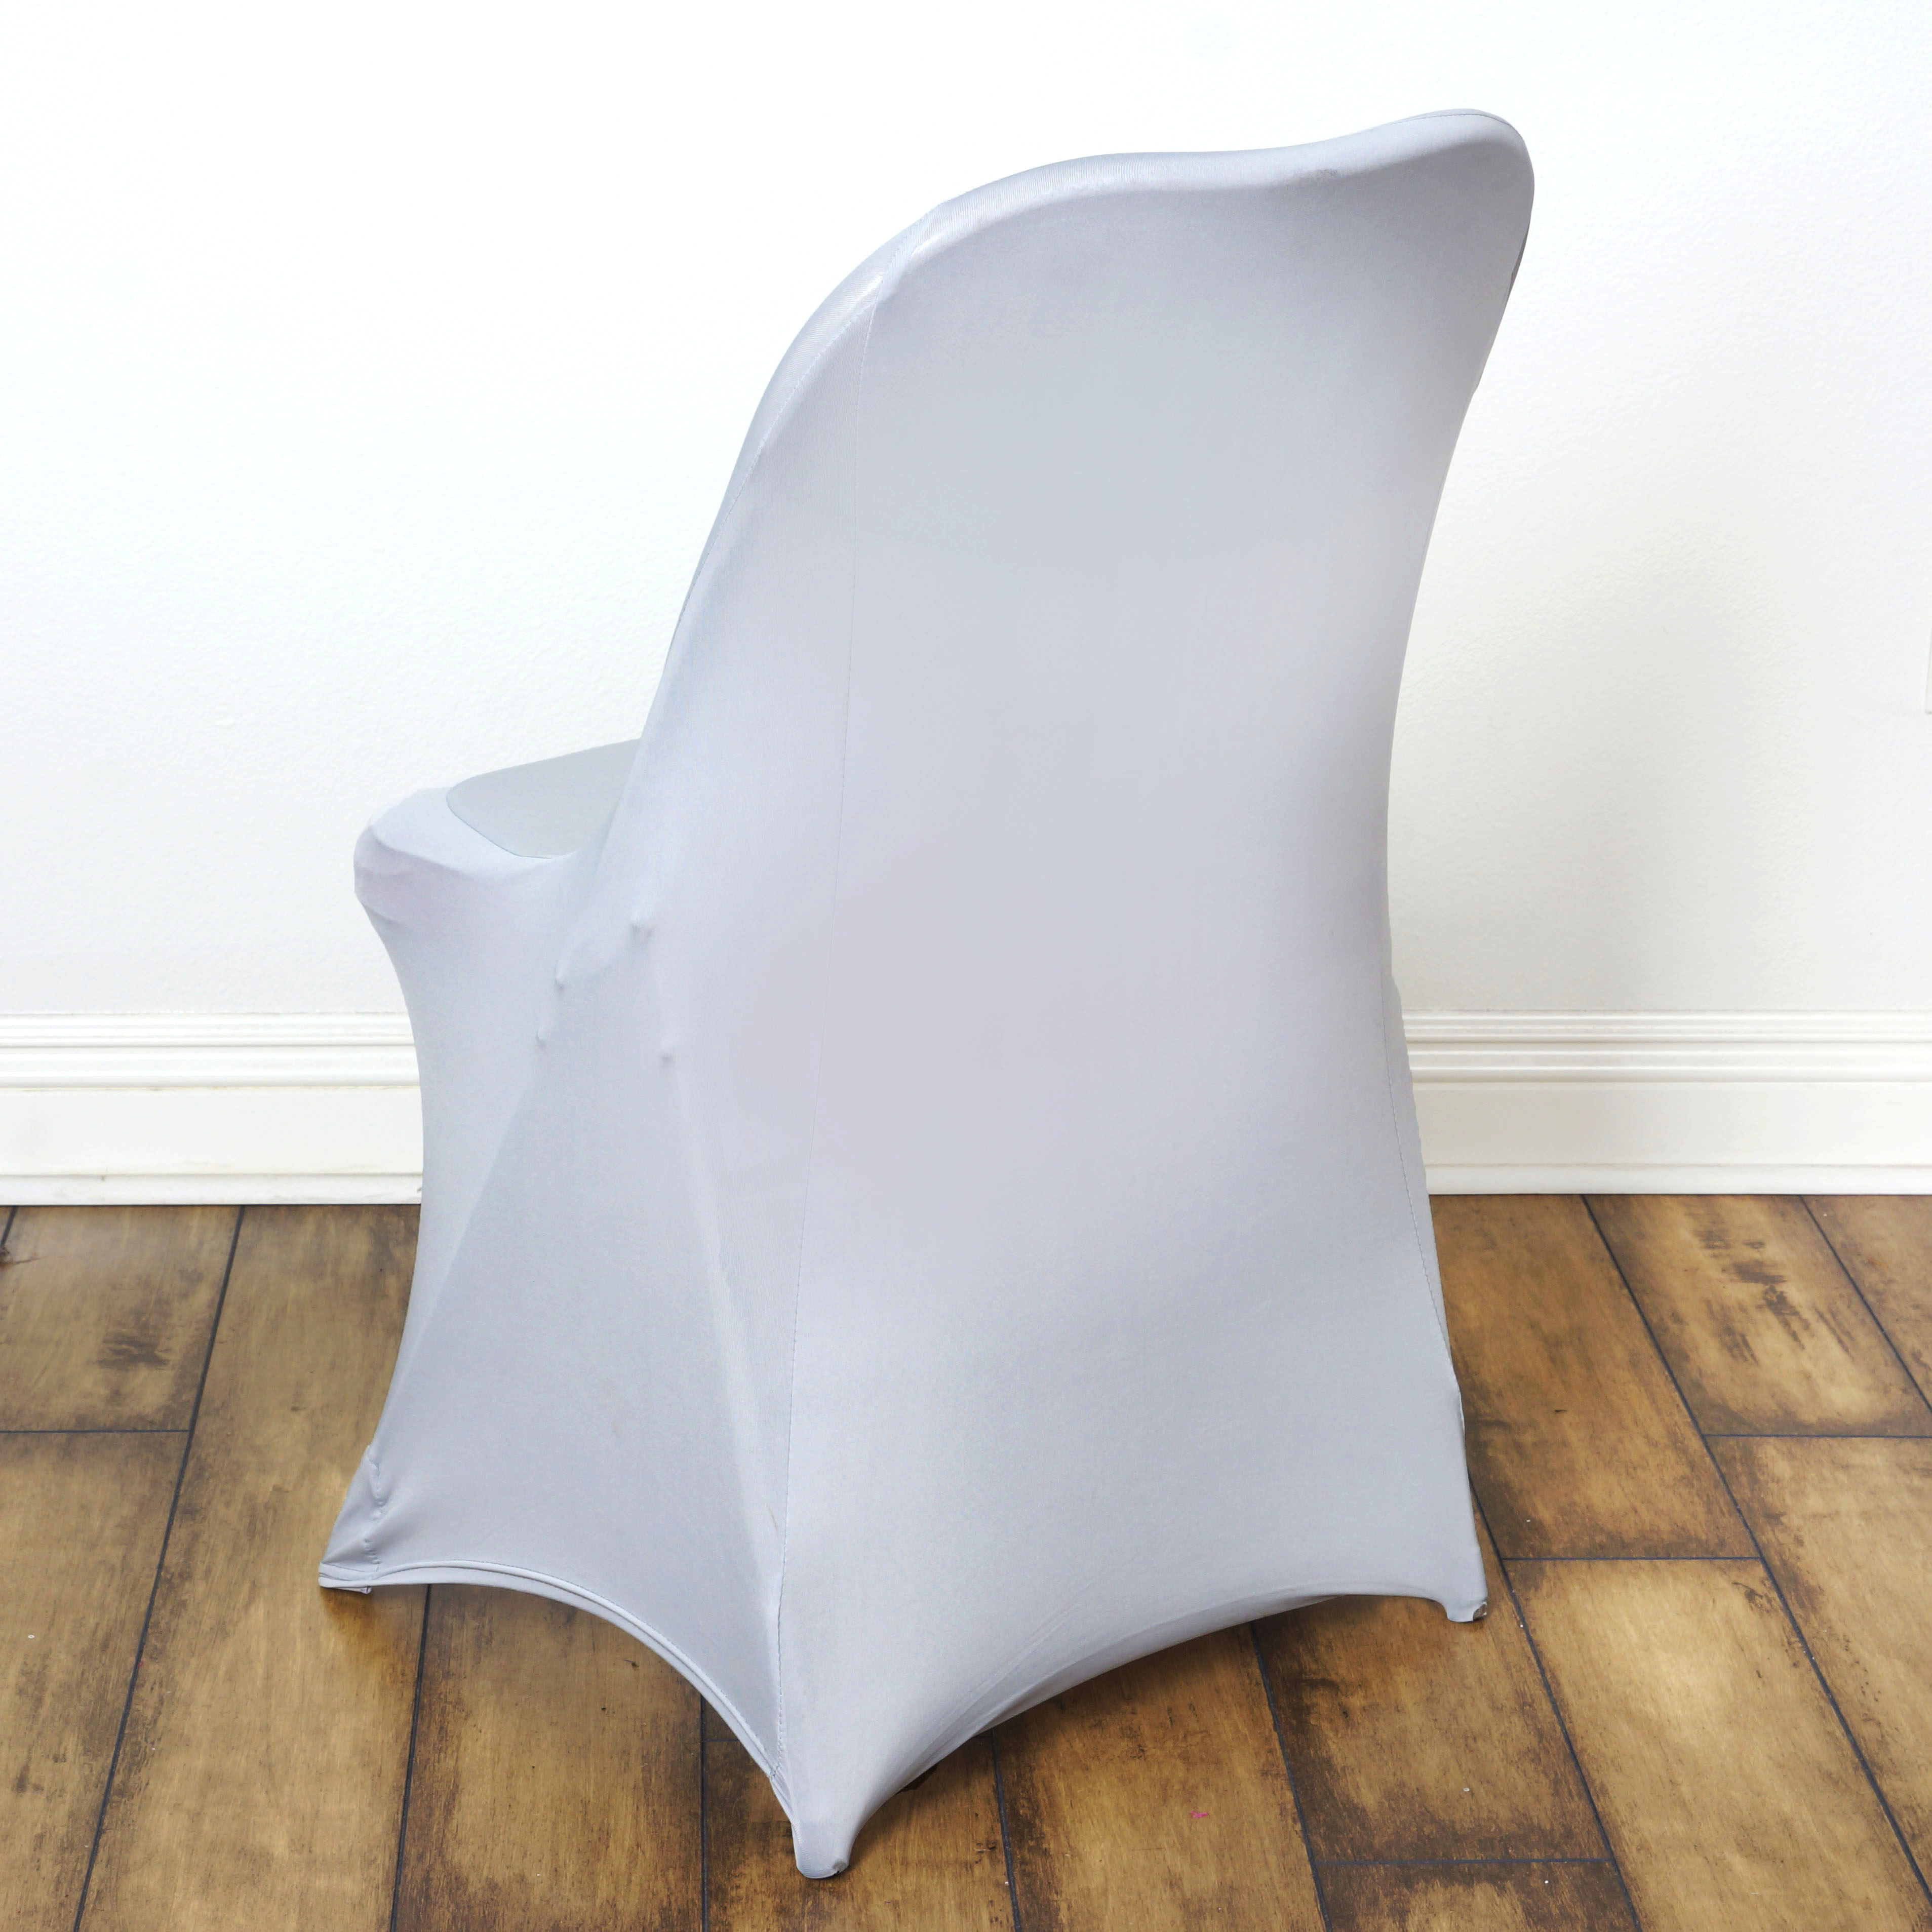 Chair Cover Balsacircle Spandex Stretchable Folding Chair Covers Slipcovers For Party Wedding Reception Decorations